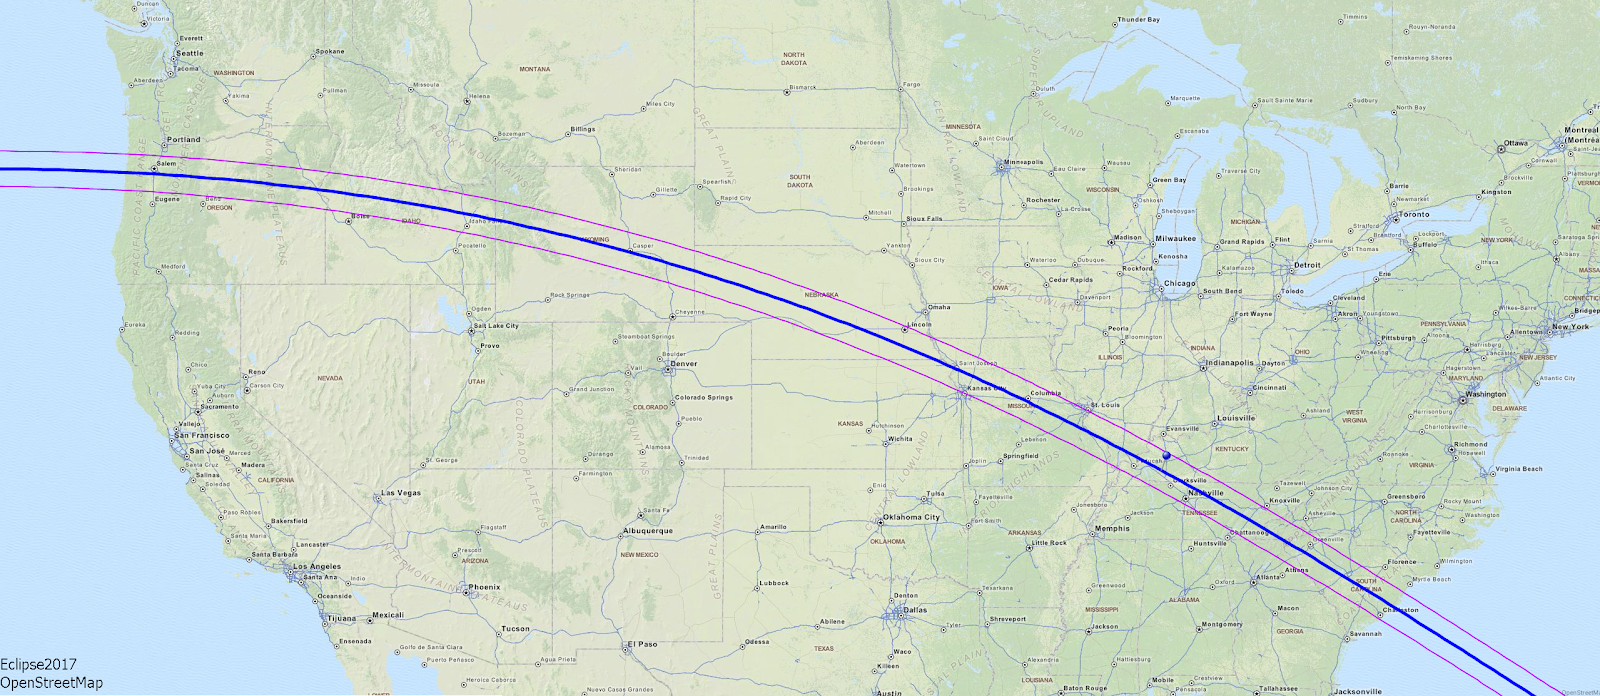 Map_of_the_solar_eclipse_2017_USA_OSM_Zoom1.jpg